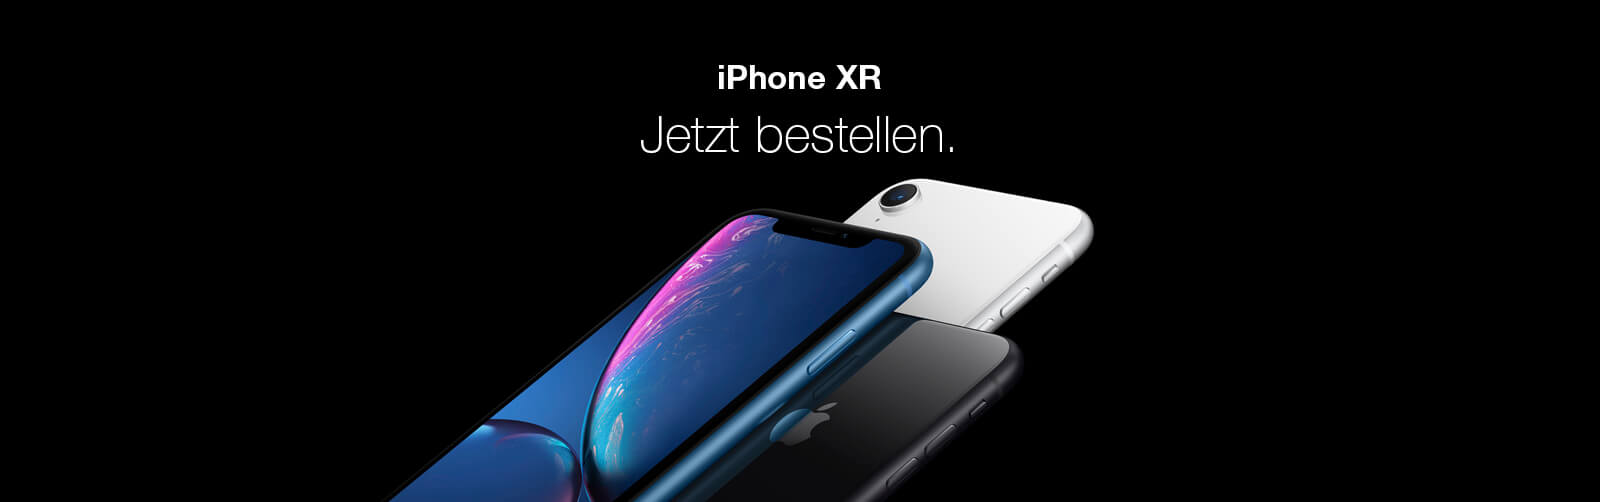 Apple iPhoneXR